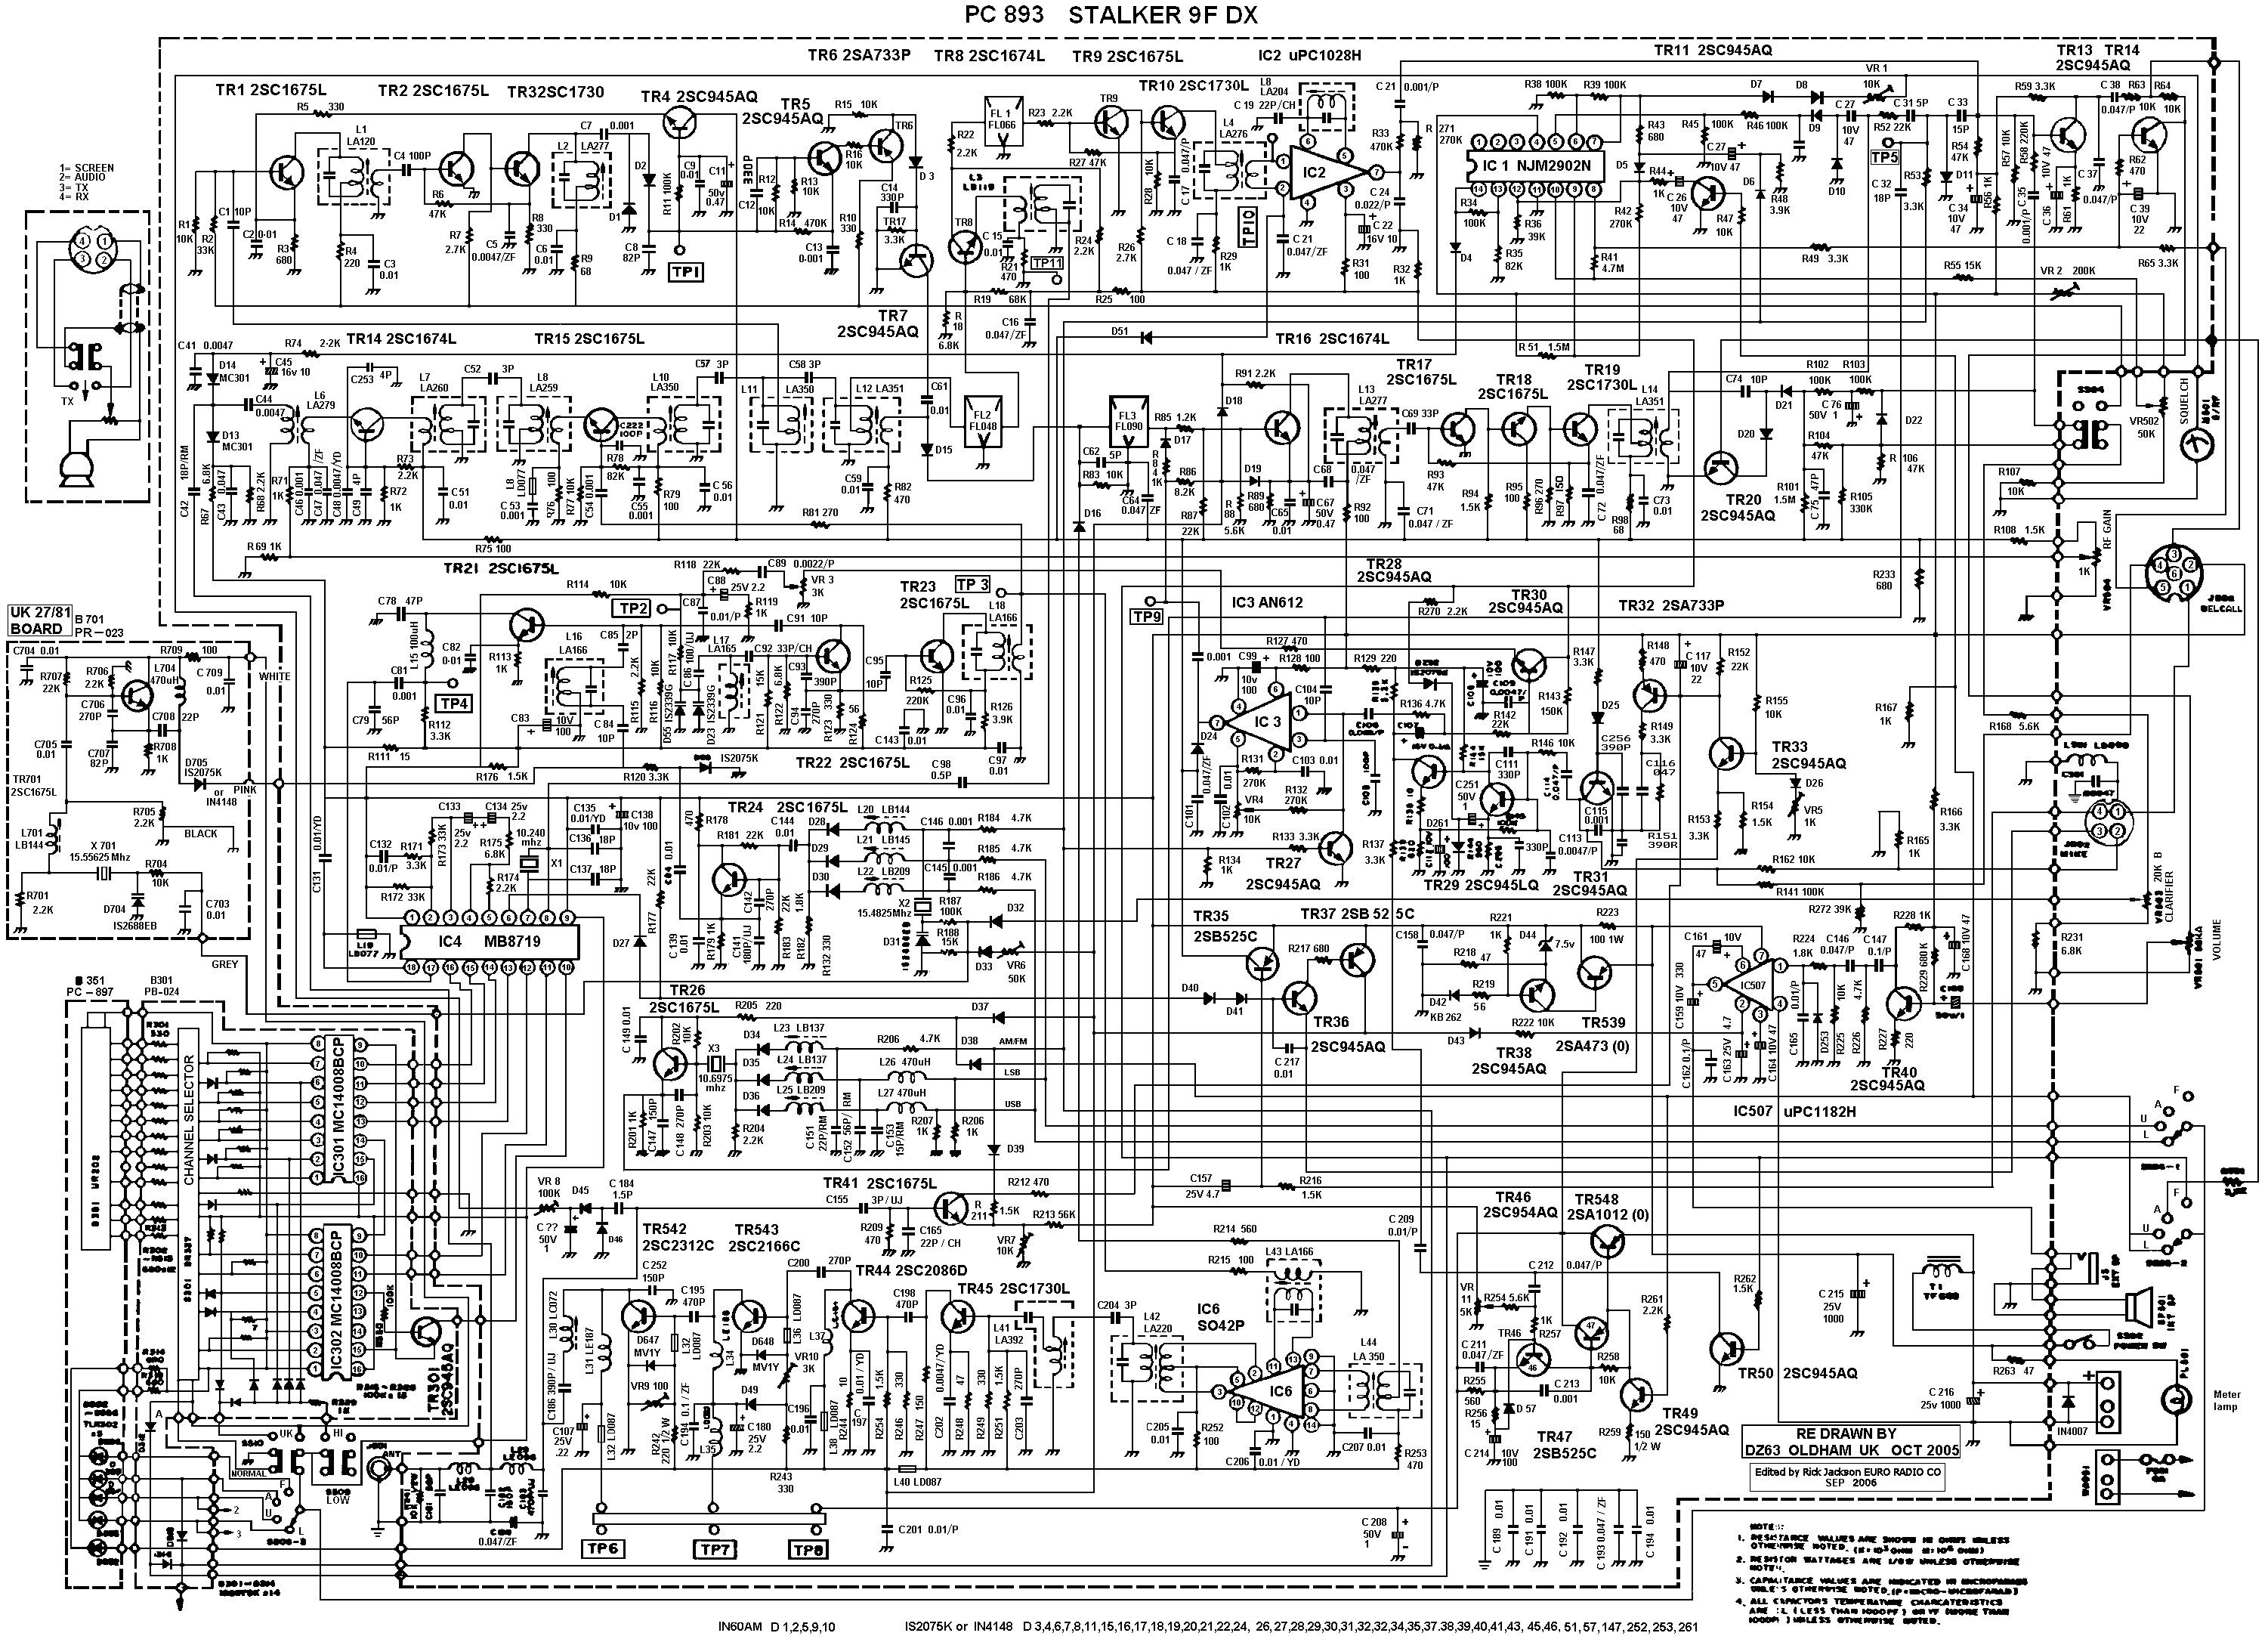 FH_0095] Complex Electric Circuit Circuit Diagram Download DiagramDylit Rele Ally Lukep Umng Mohammedshrine Librar Wiring 101